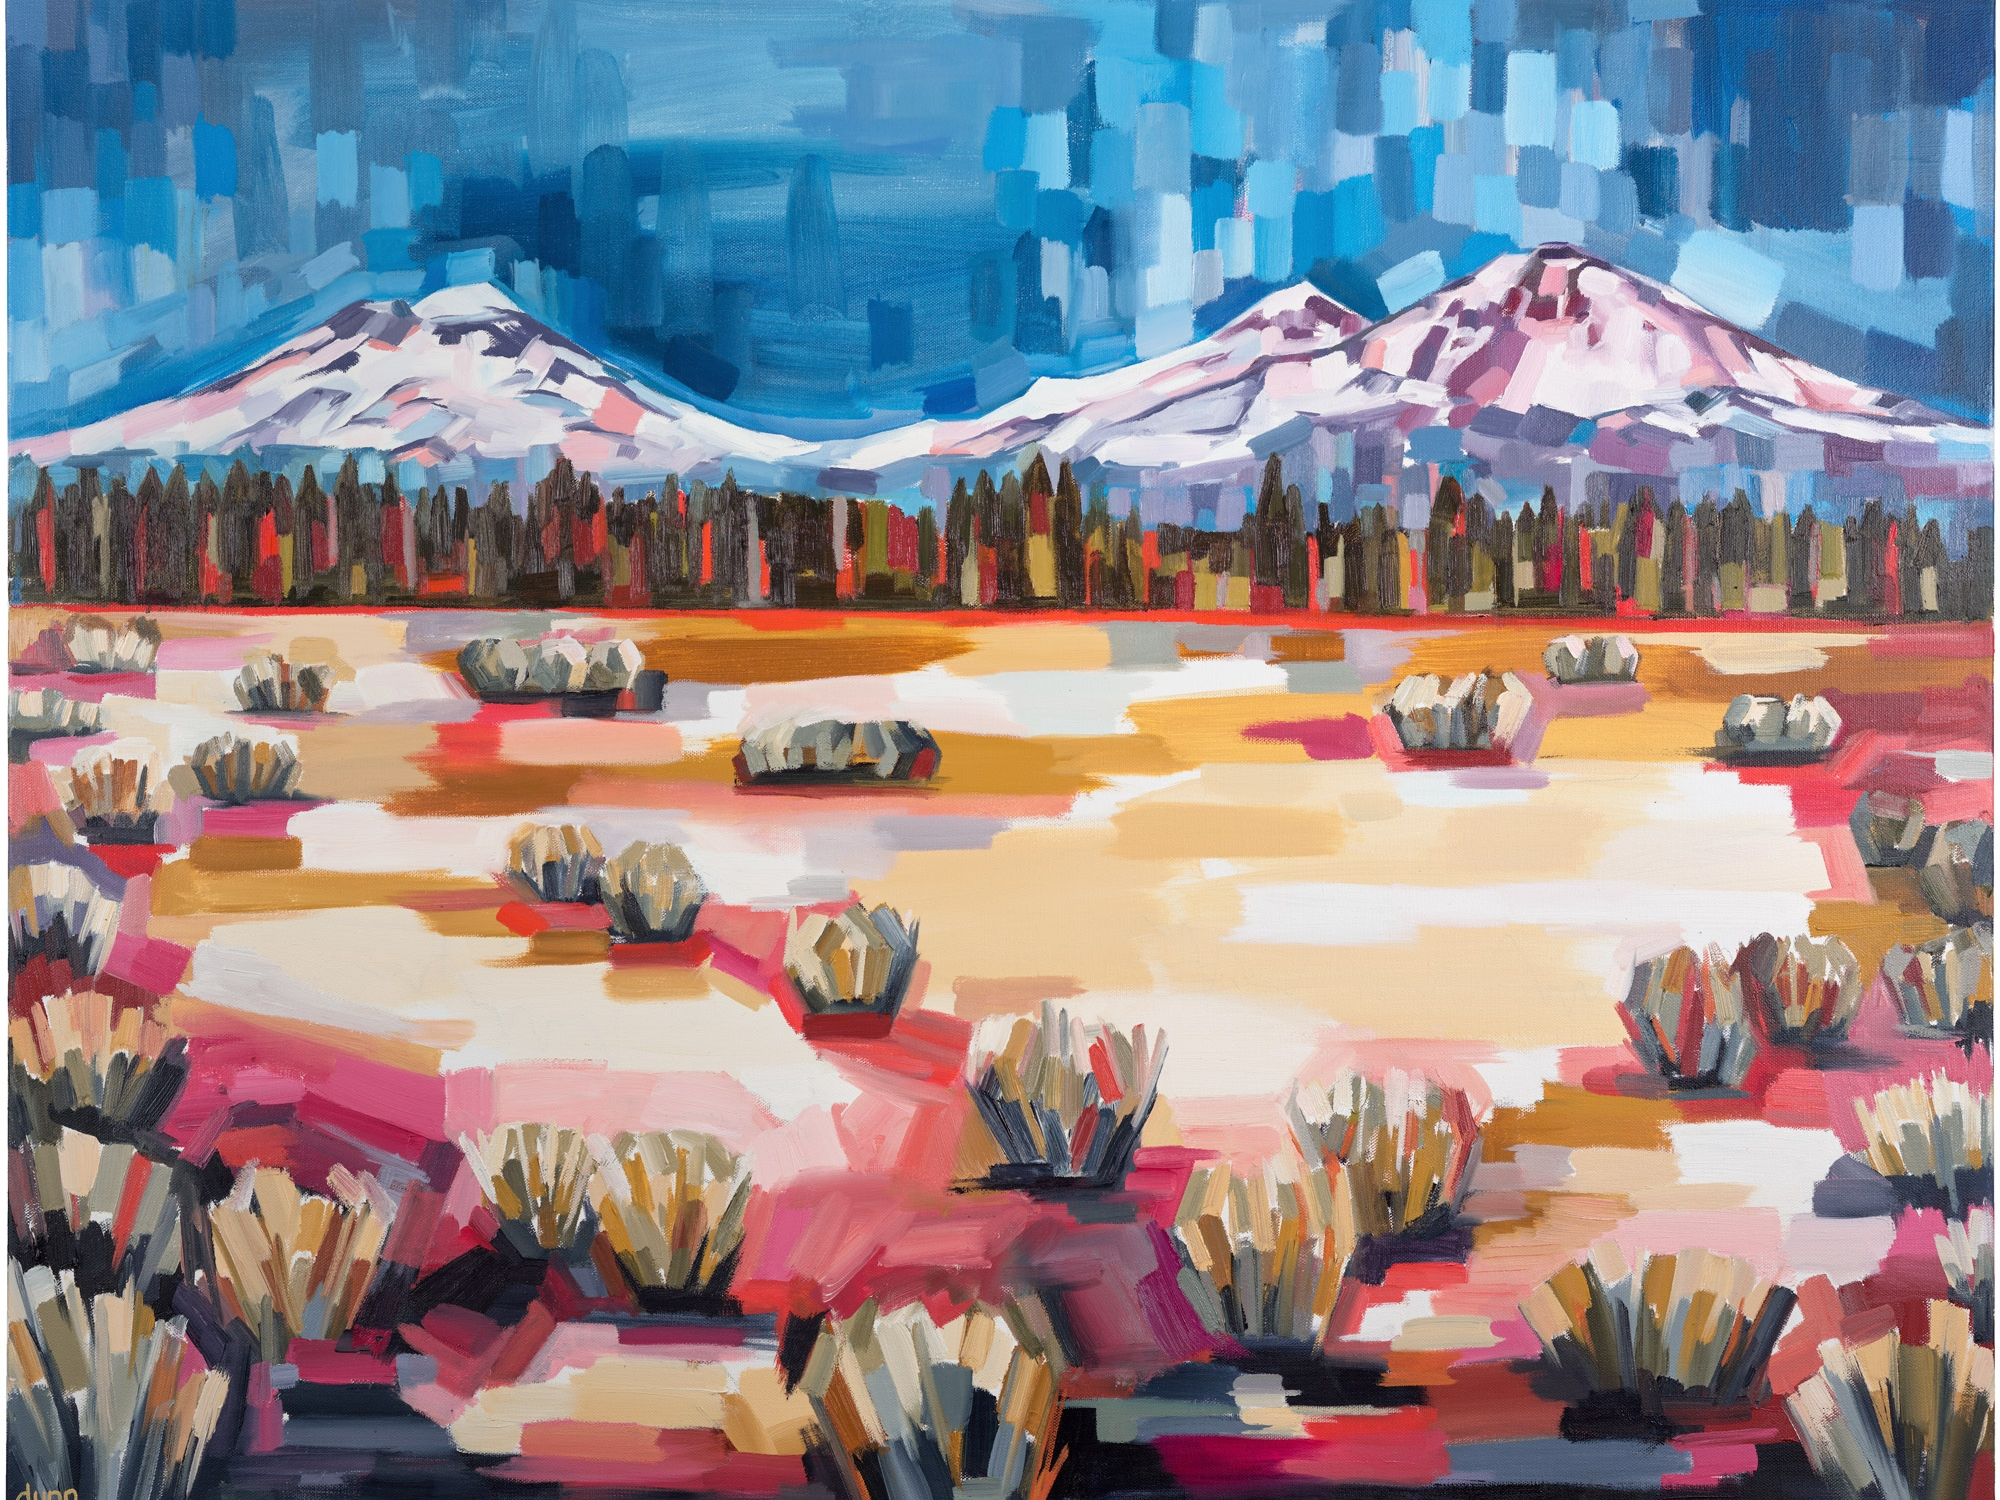 THREE SISTERS, oil on canvas, 30 x 40 inches -10% of print sales to the Conservation Alliance